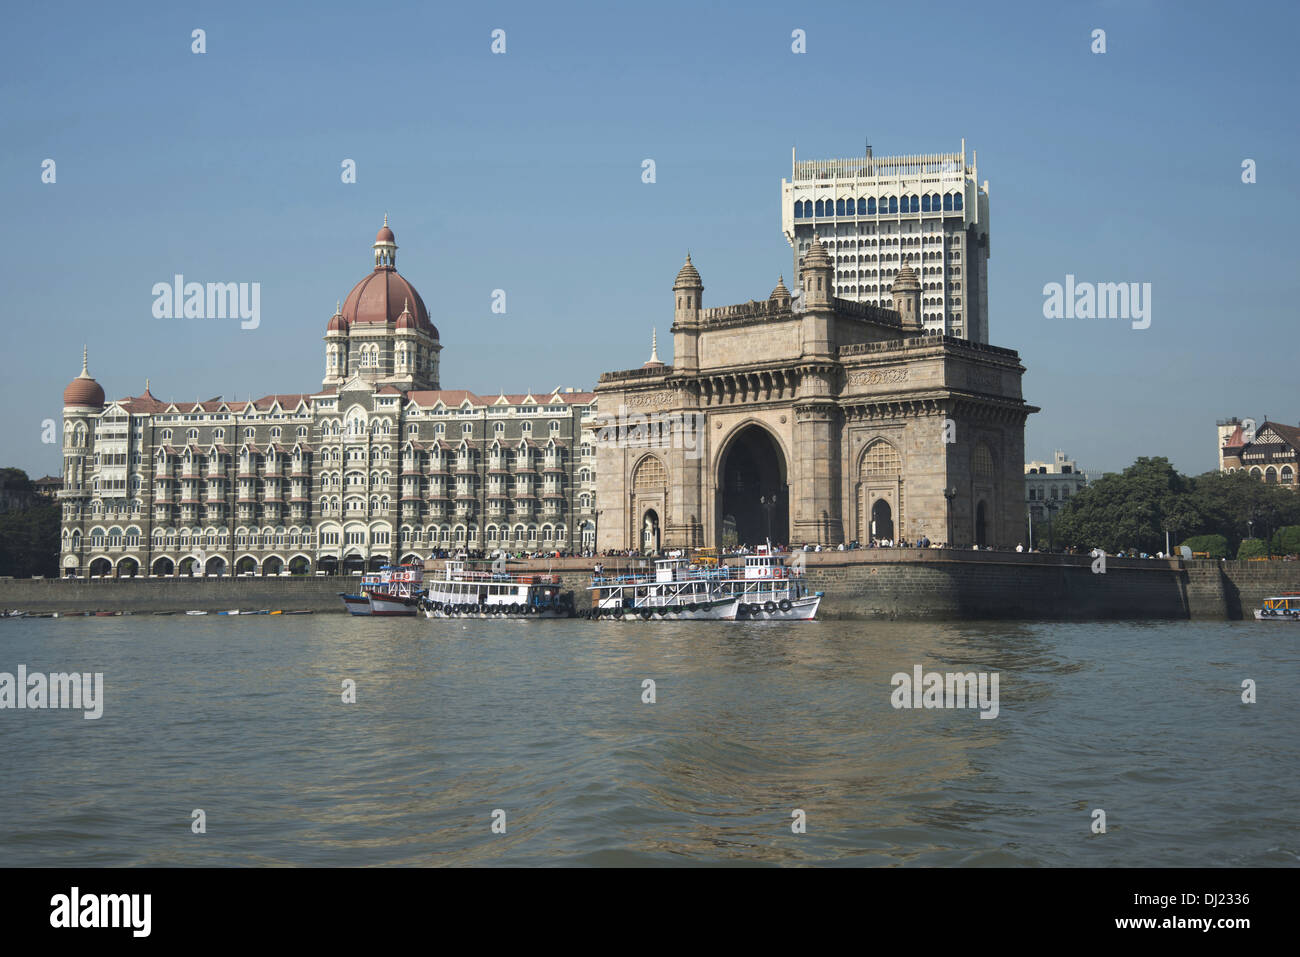 Immagine che mostra la Gateway of India con il Taj Hotels in background, Mumbai. Immagini Stock